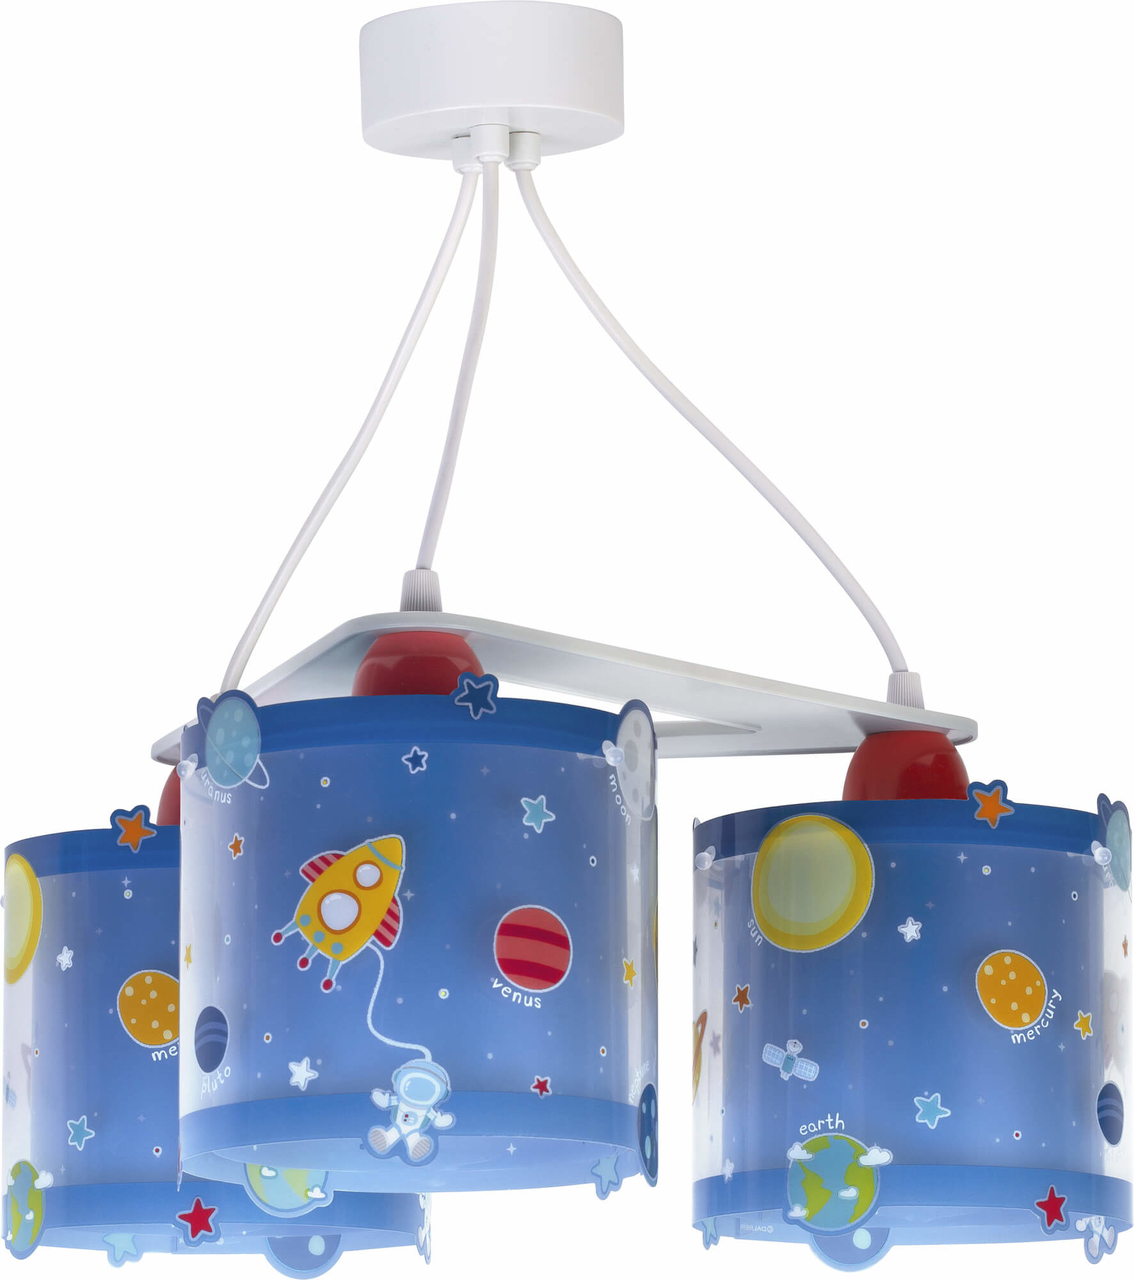 Dalber 3-lamps hanglamp Planets 41344 Blauw